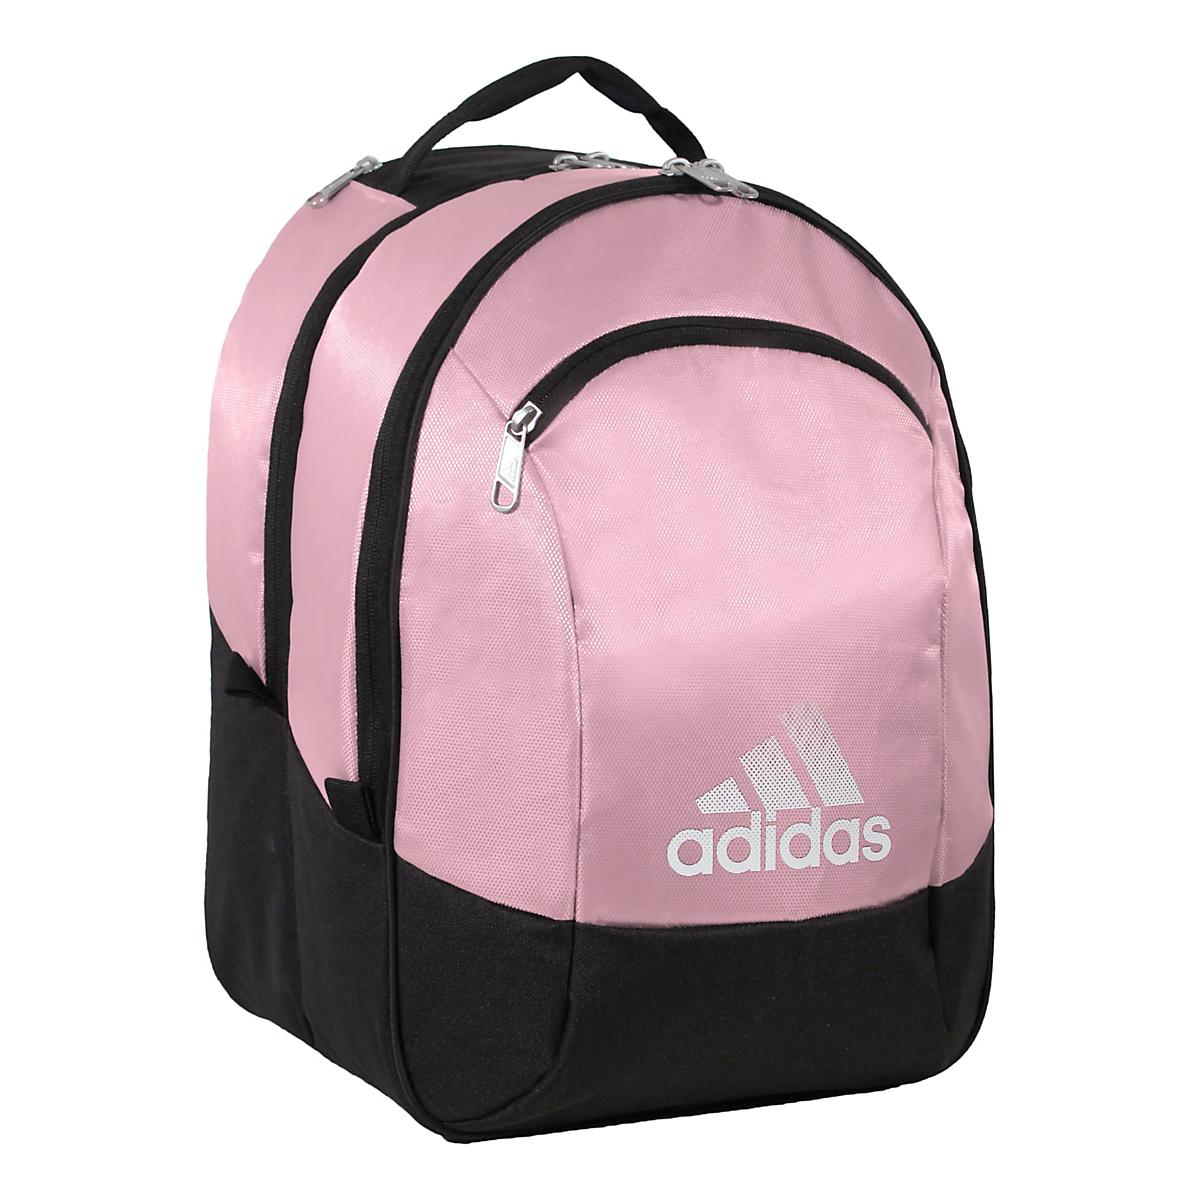 adidas�Striker Team Backpack